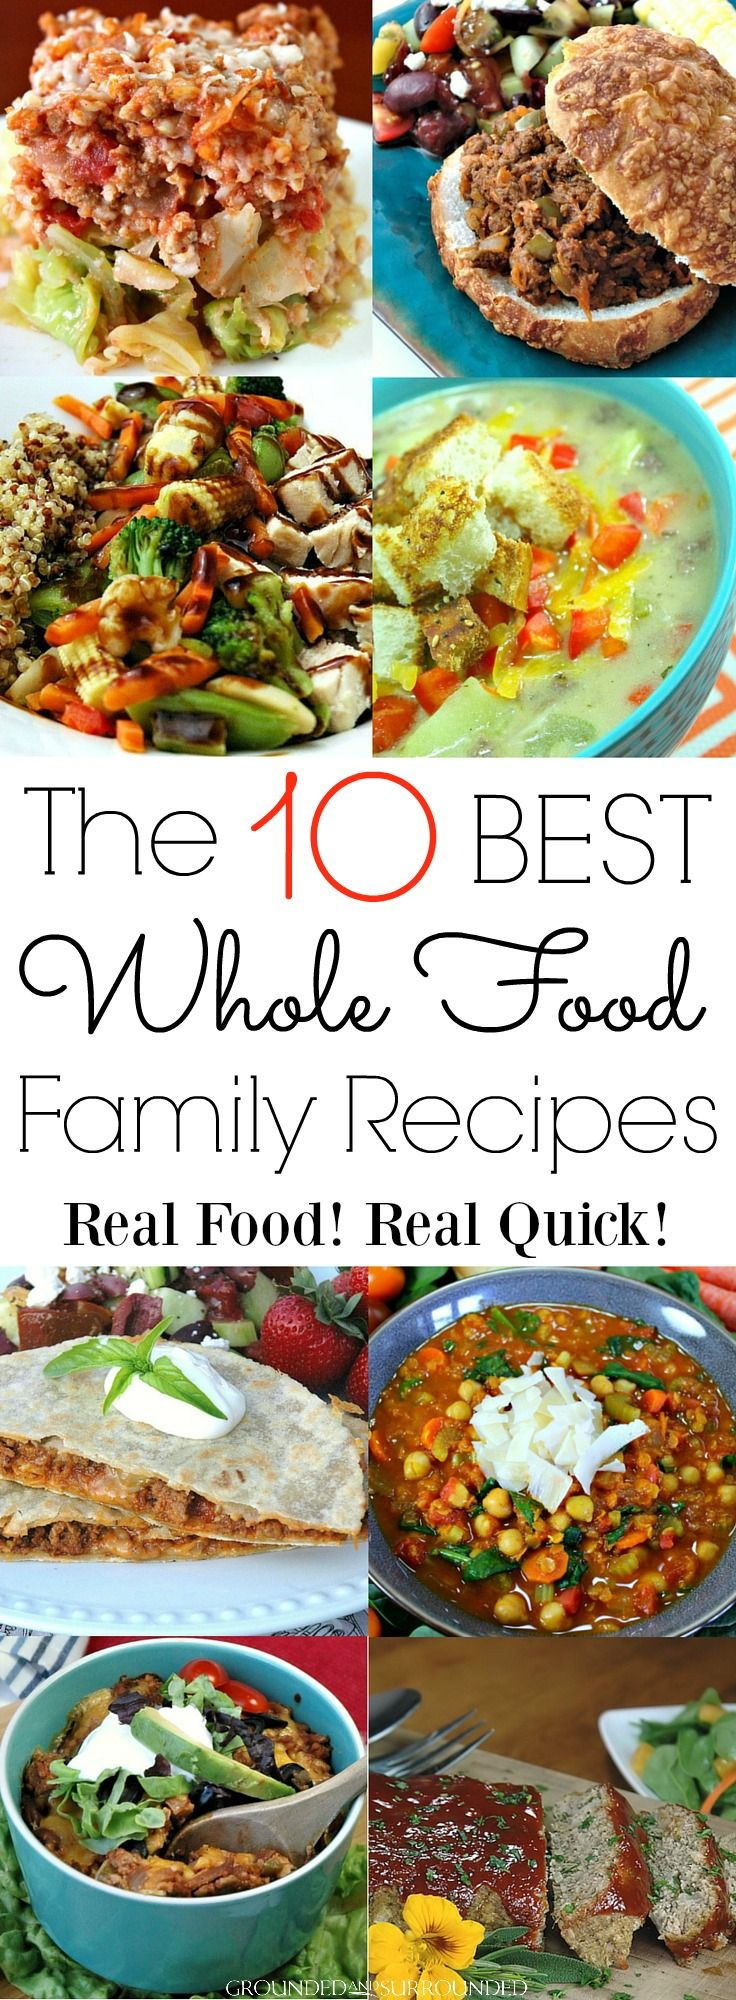 The 10 Best Whole Food Family Recipes   The BEST kid friendly and family favorite recipes just got healthy! Every dinner is easy, delicious, and packed full of nutrient dense whole foods aka vegetables, fruit, and lean protein. Are you on a budget? These meals will stretch your food budget too! You will fall in love with these quick and fun foods whether you follow clean eating, Paleo, or gluten-free vegetarian diets!